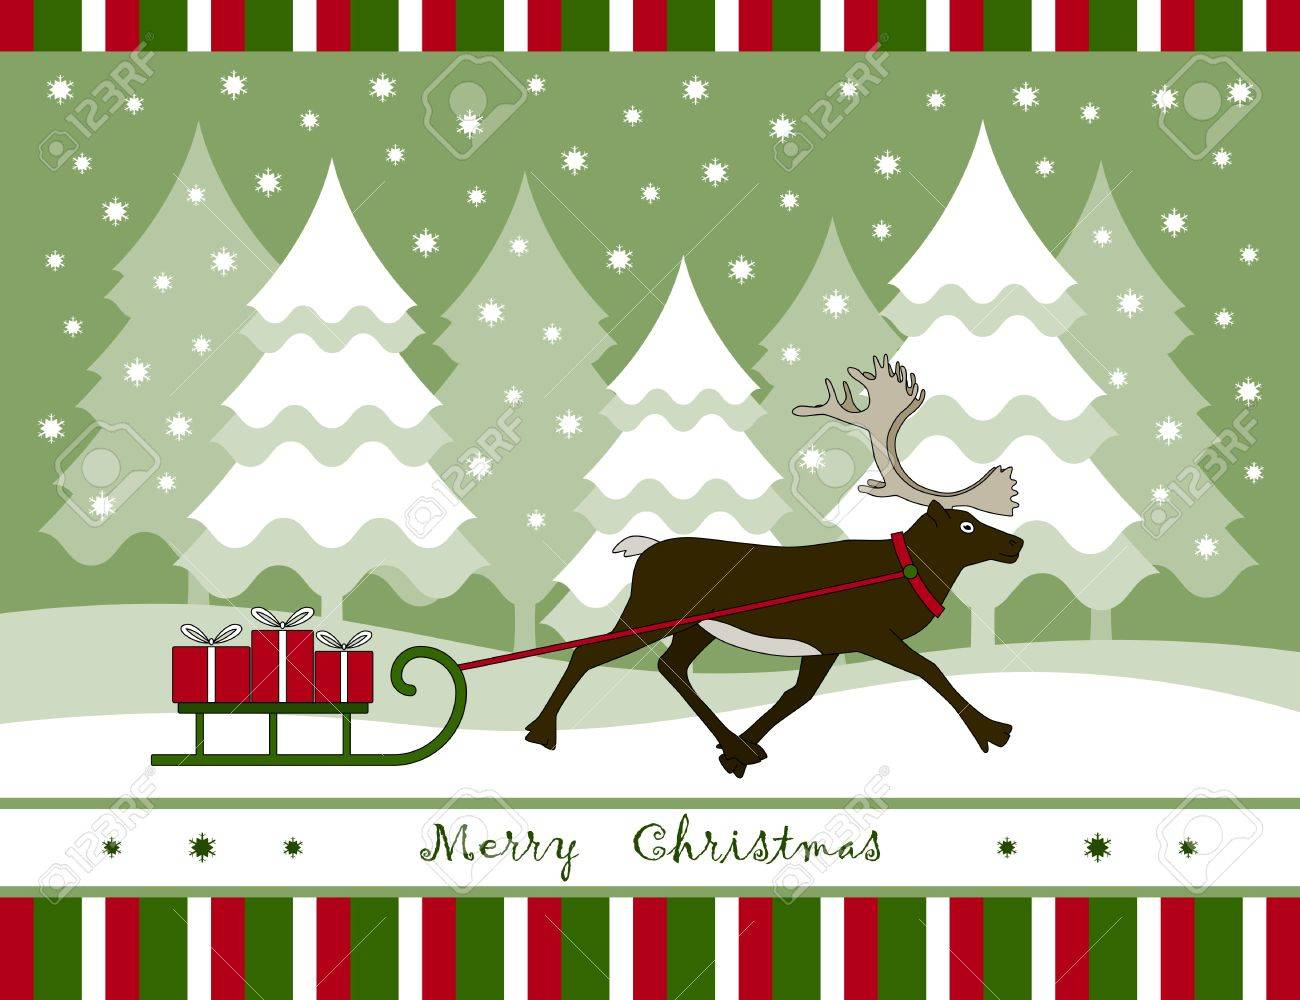 vector christmas card with reindeer pulling sledge with gifts Stock Vector - 11028034